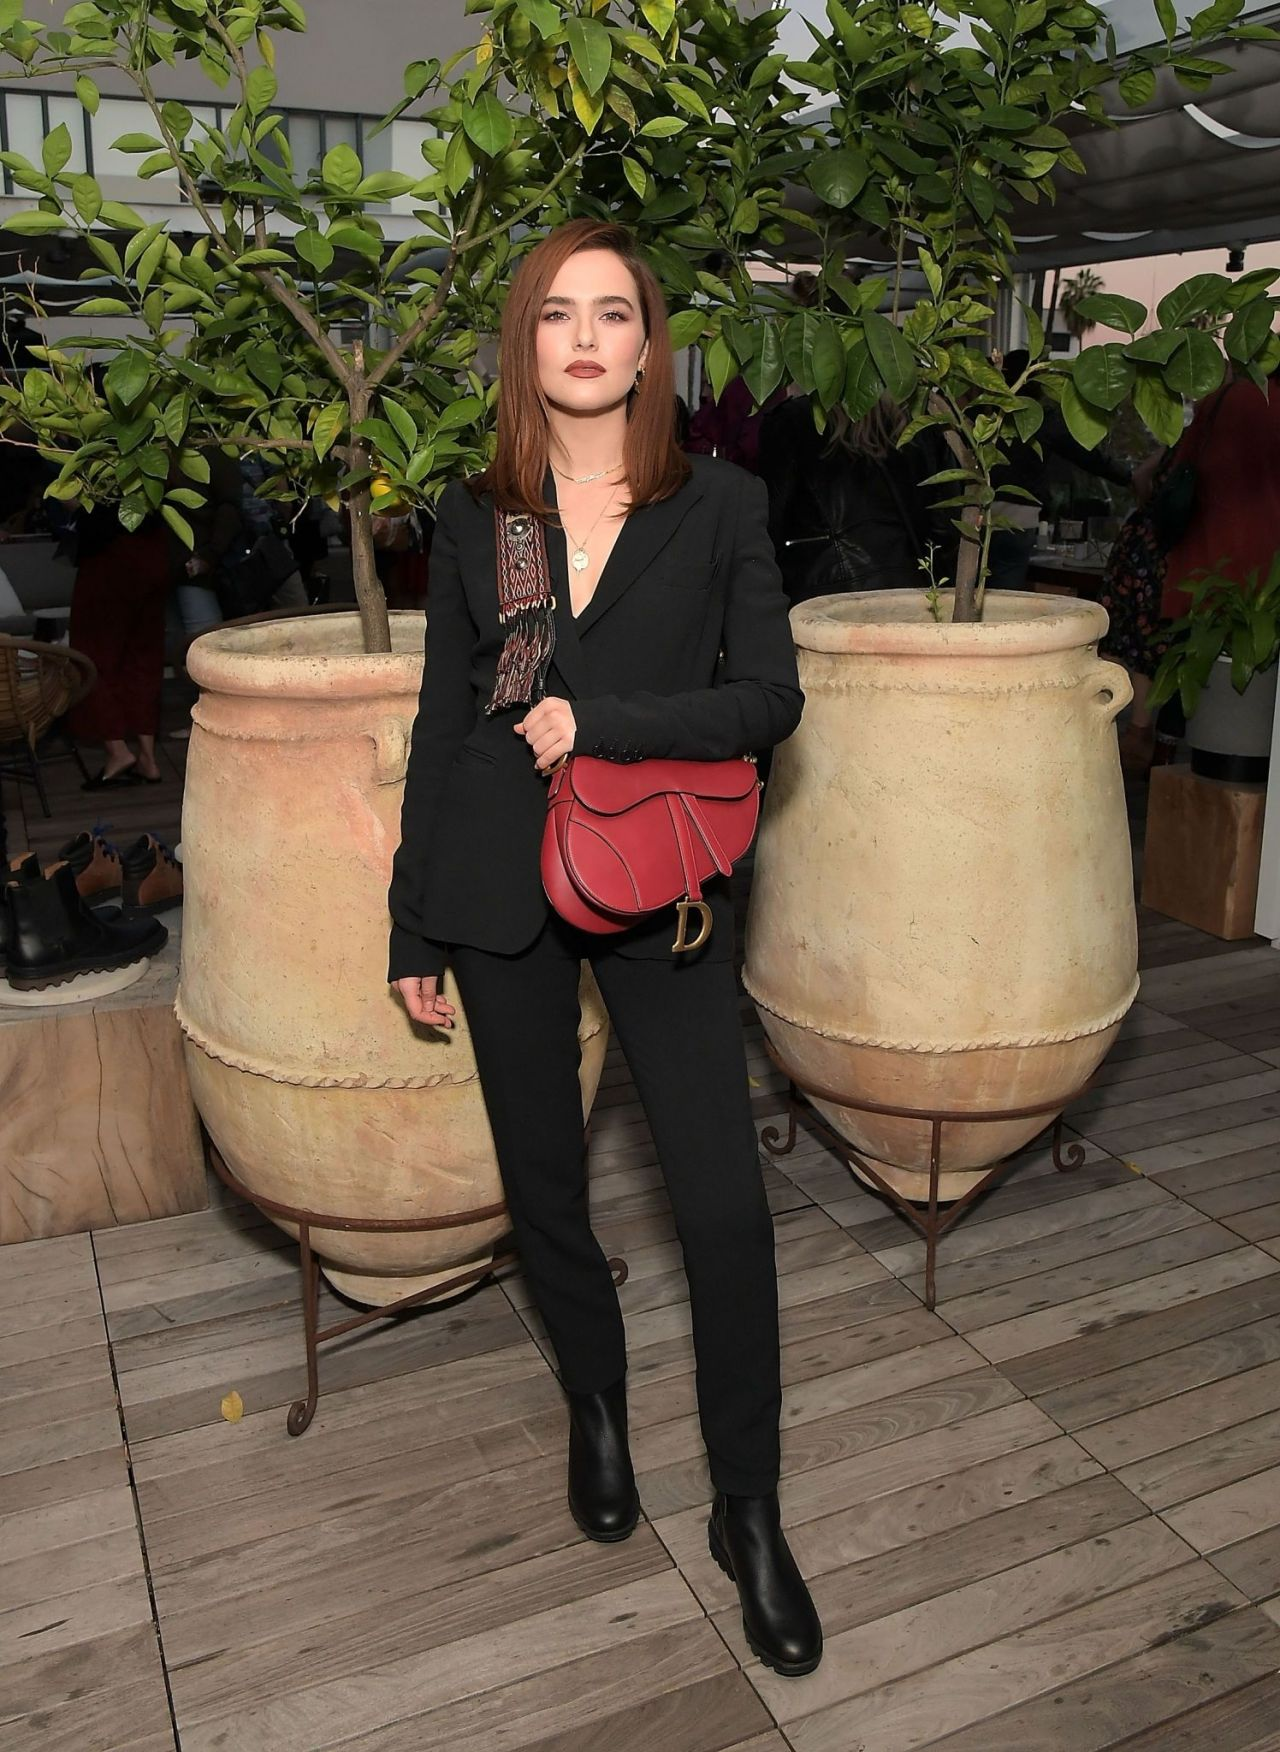 https://celebmafia.com/wp-content/uploads/2018/10/zoey-deutch-sorel-x-ladygang-fall-podcast-party-in-la-4.jpg